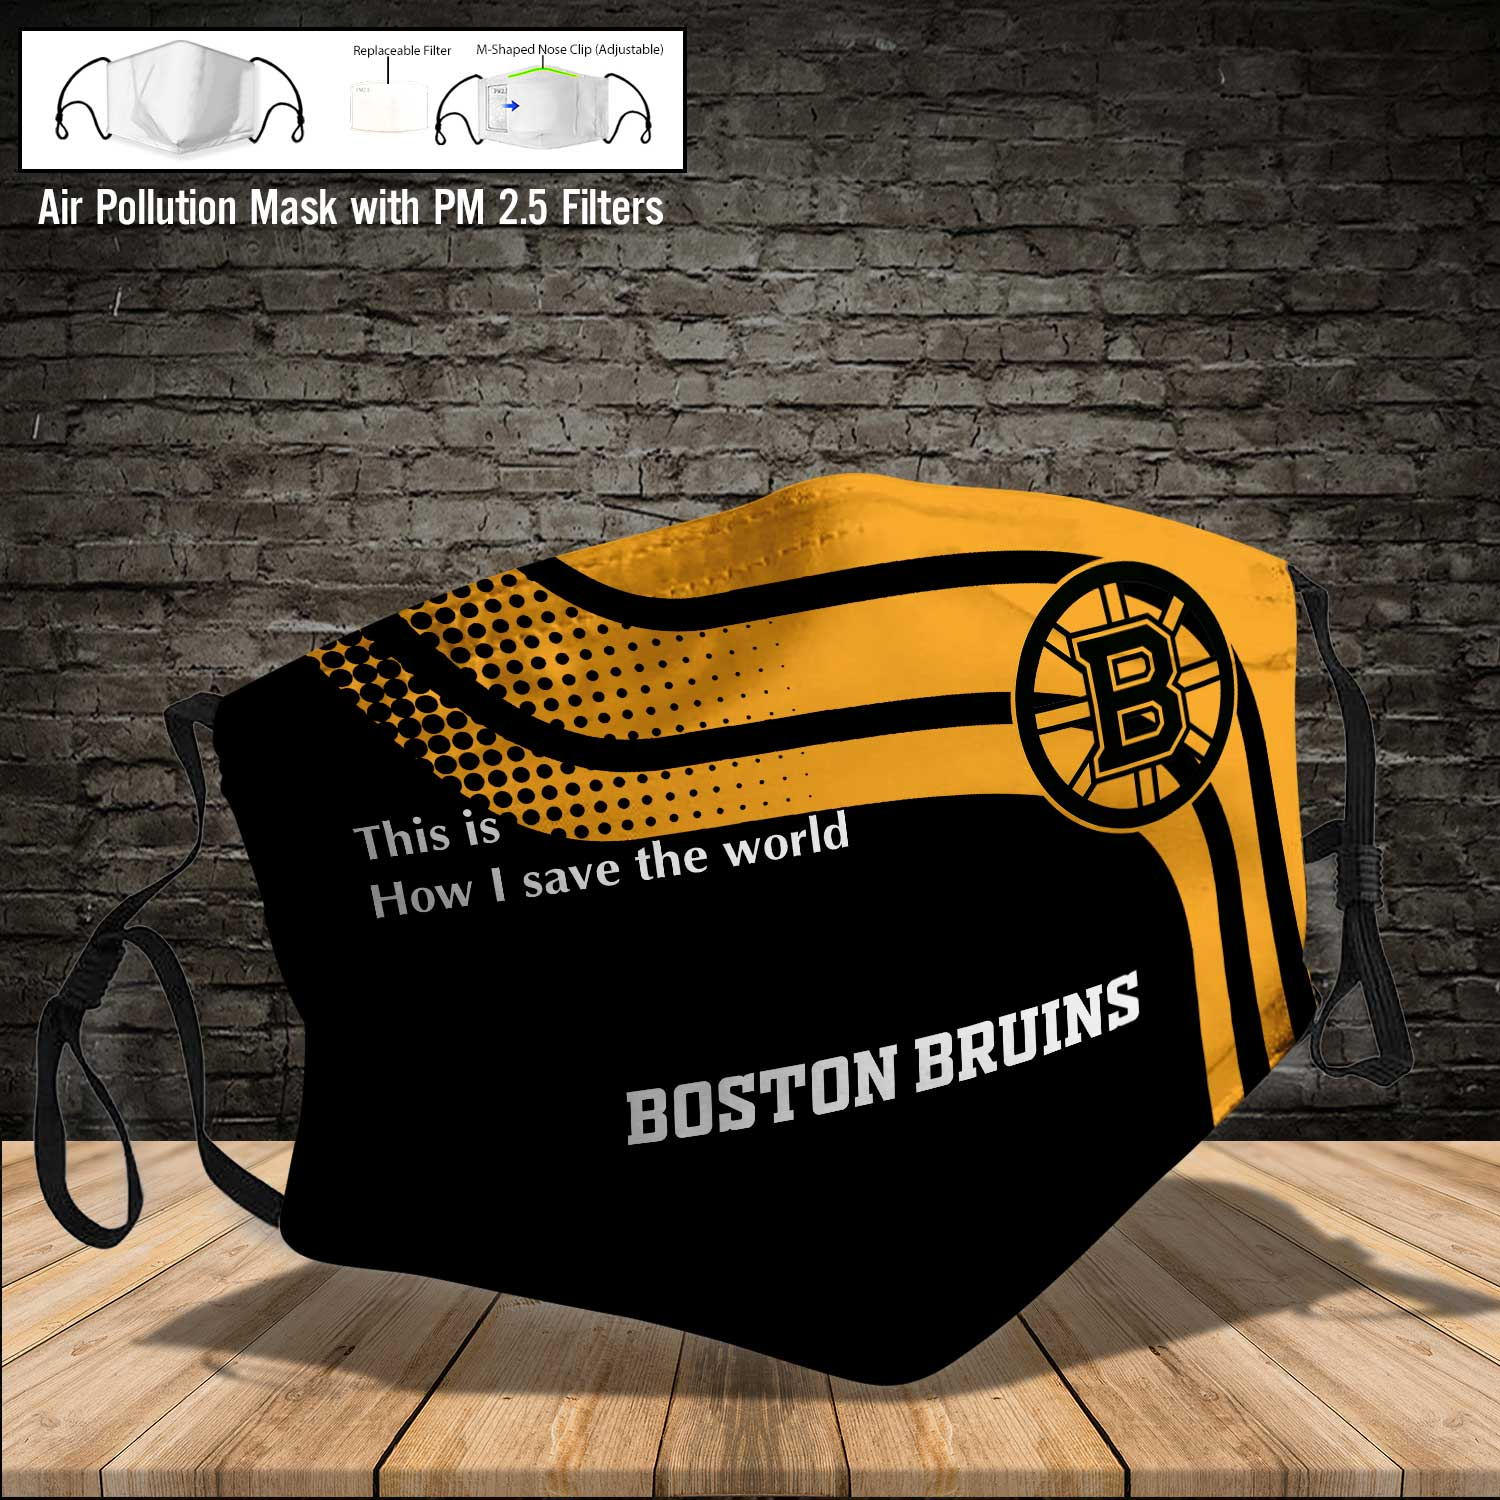 Boston bruins this is how i save the world full printing face mask 3